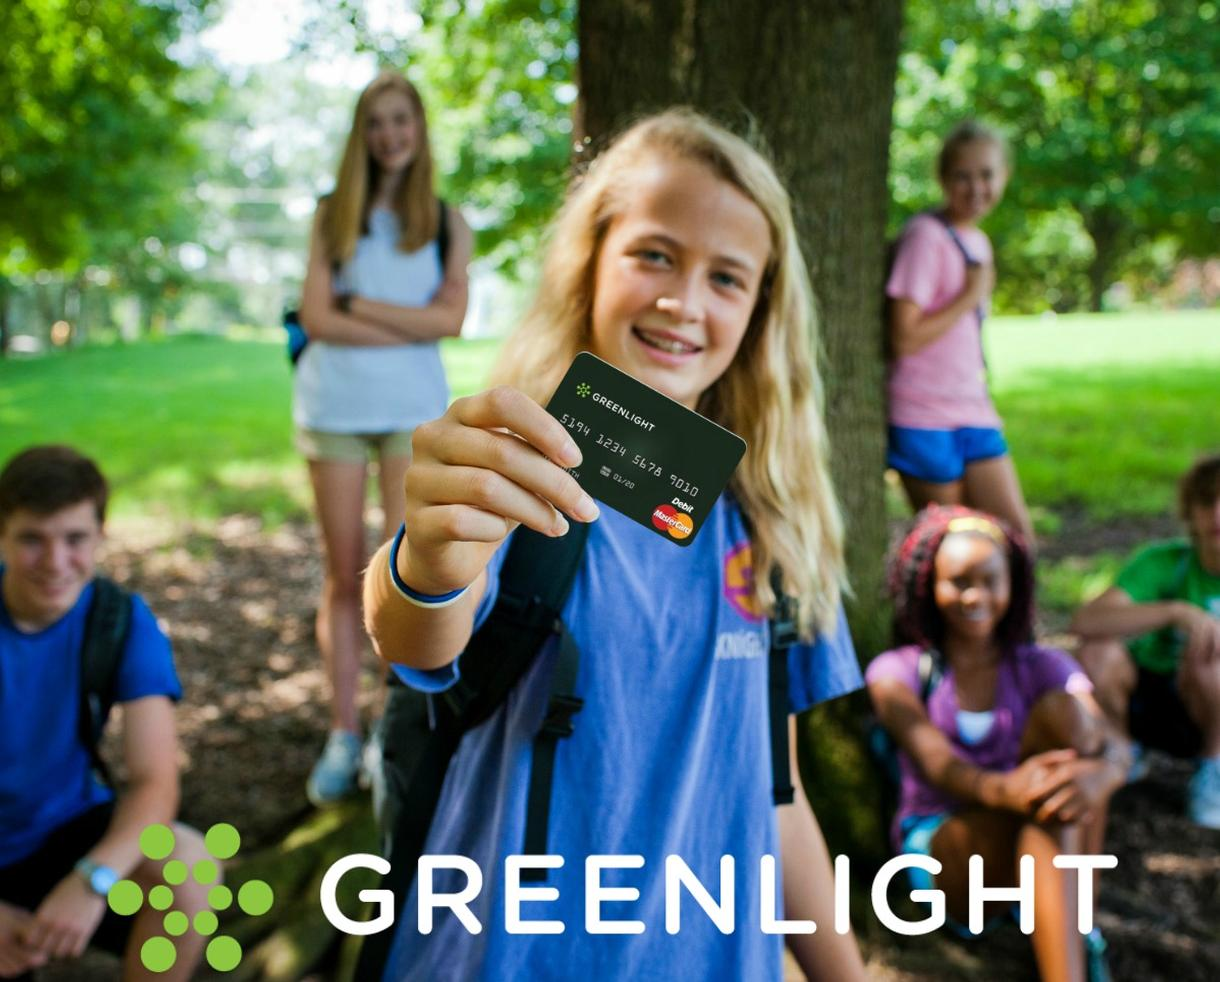 Deal Try Greenlight The Smart Debit Card for Kids FREE for 30